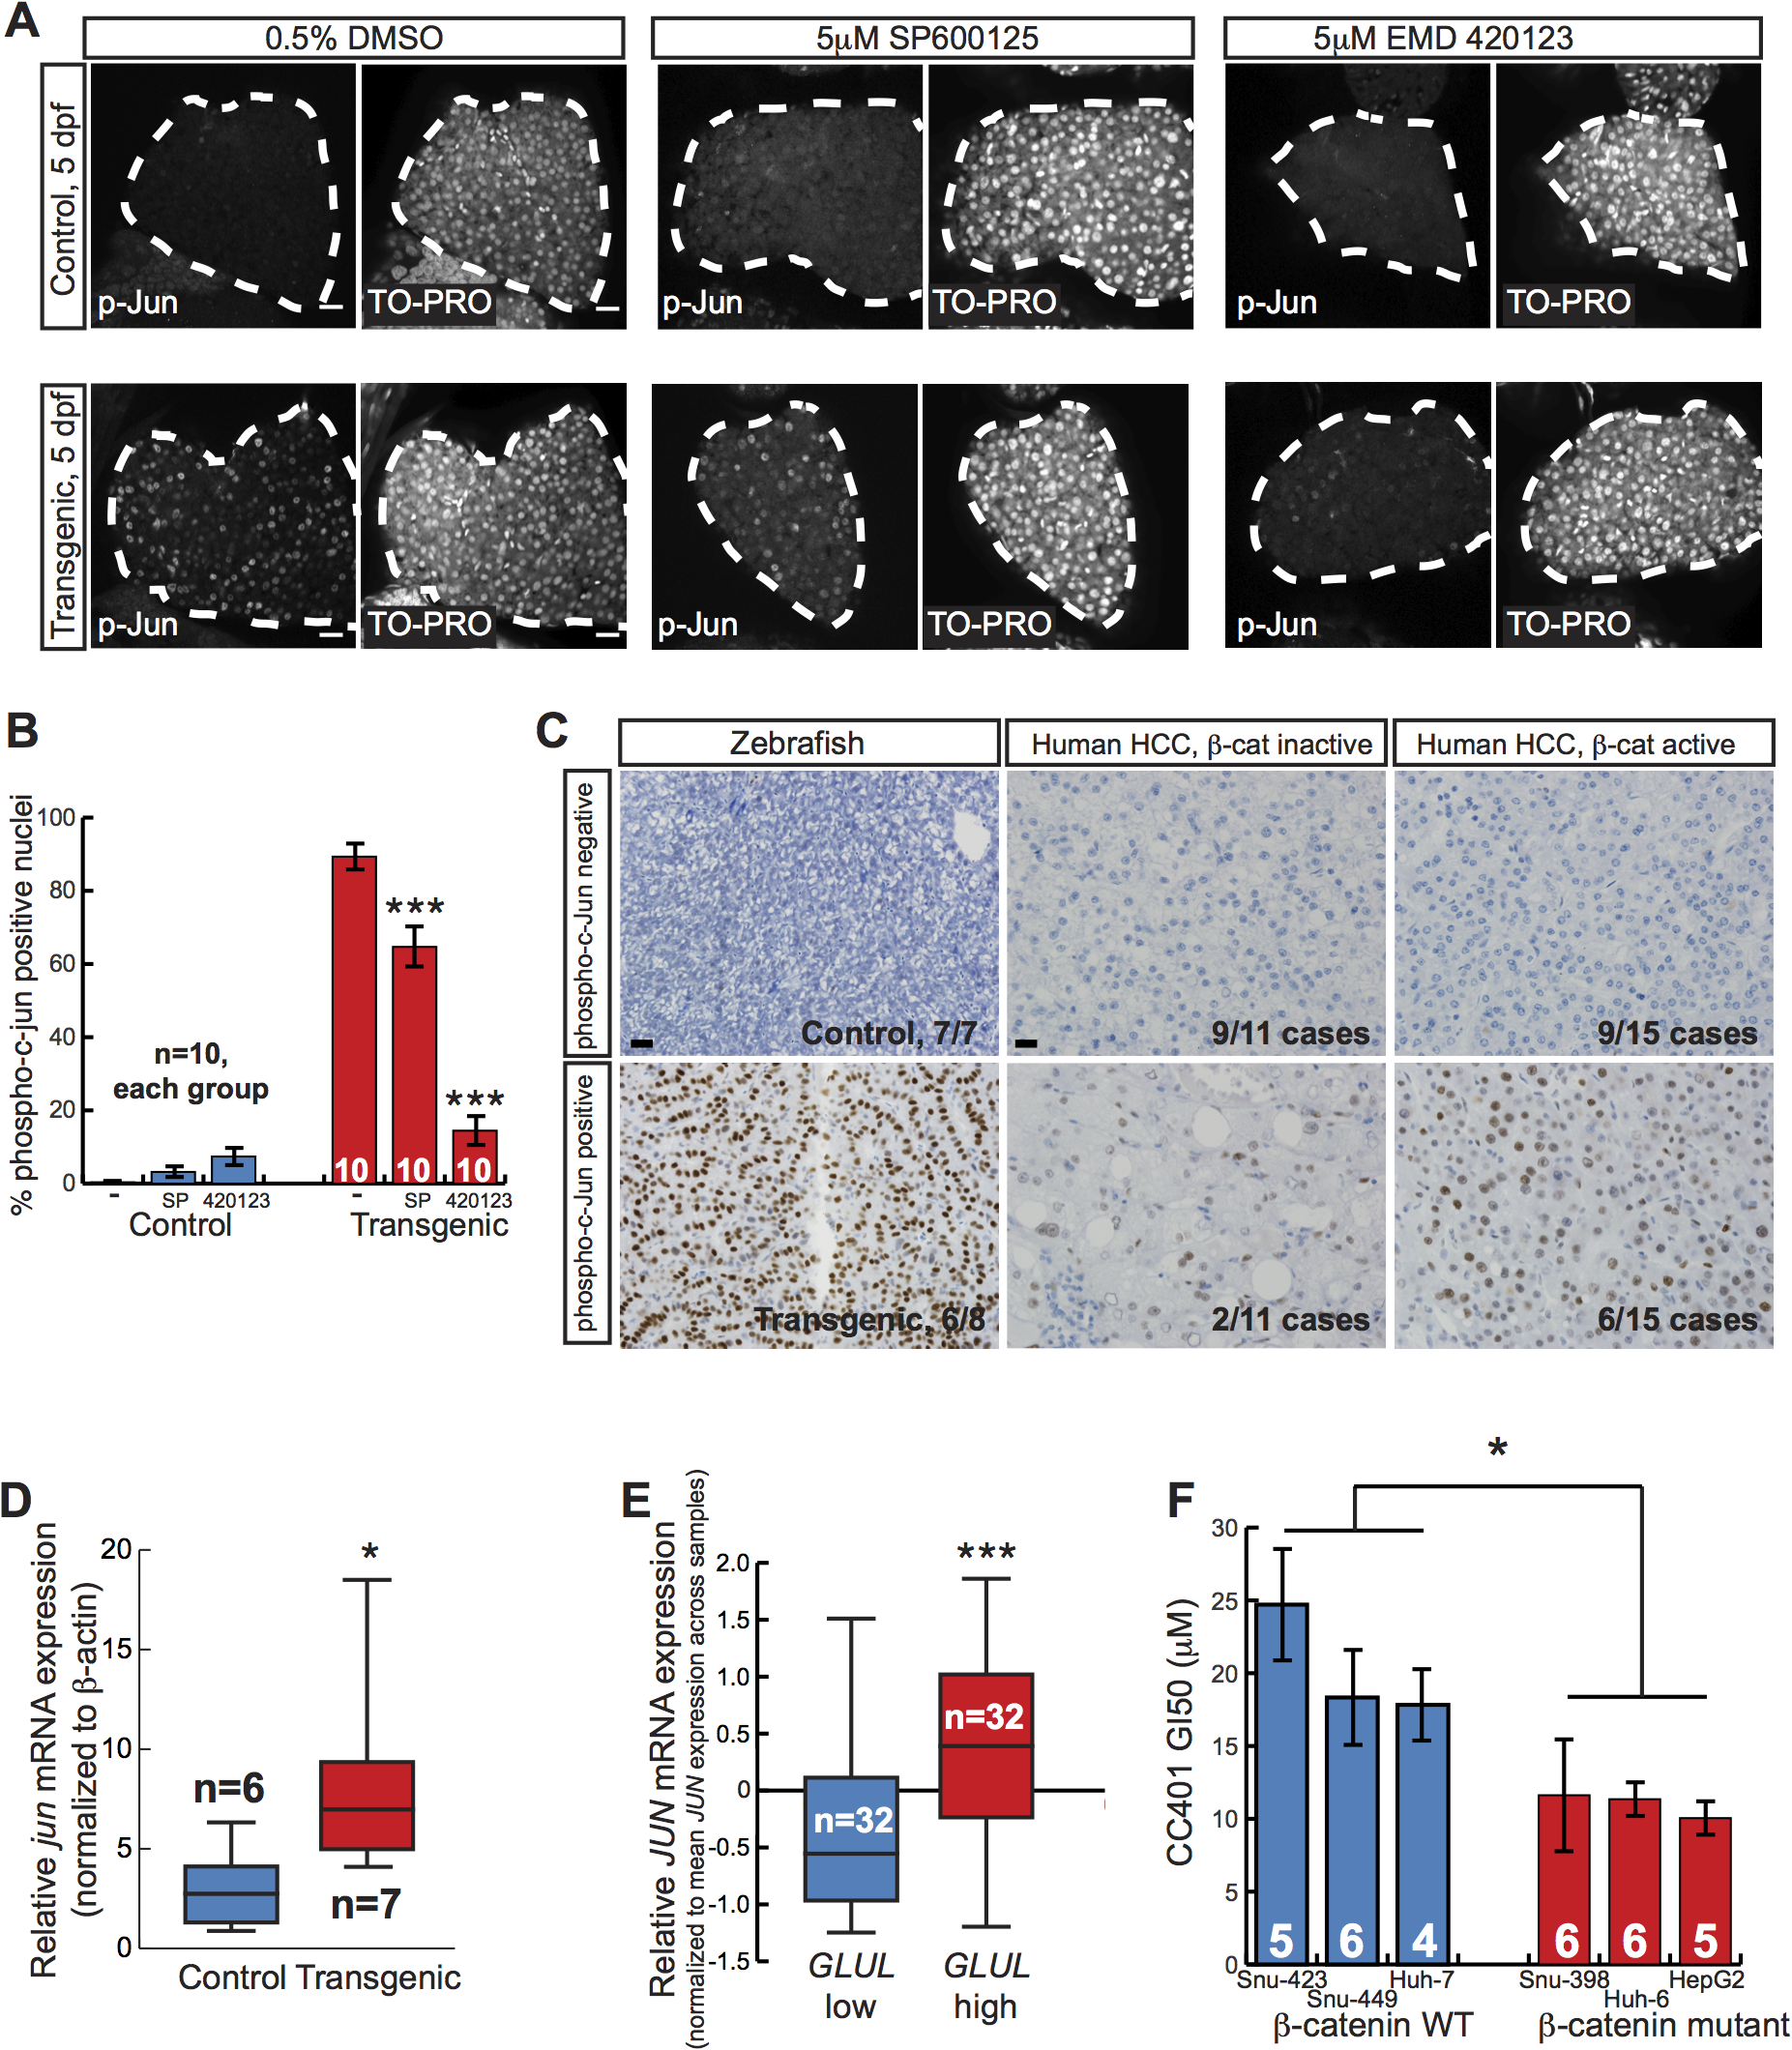 Activated β-catenin is associated with JNK pathway activation.